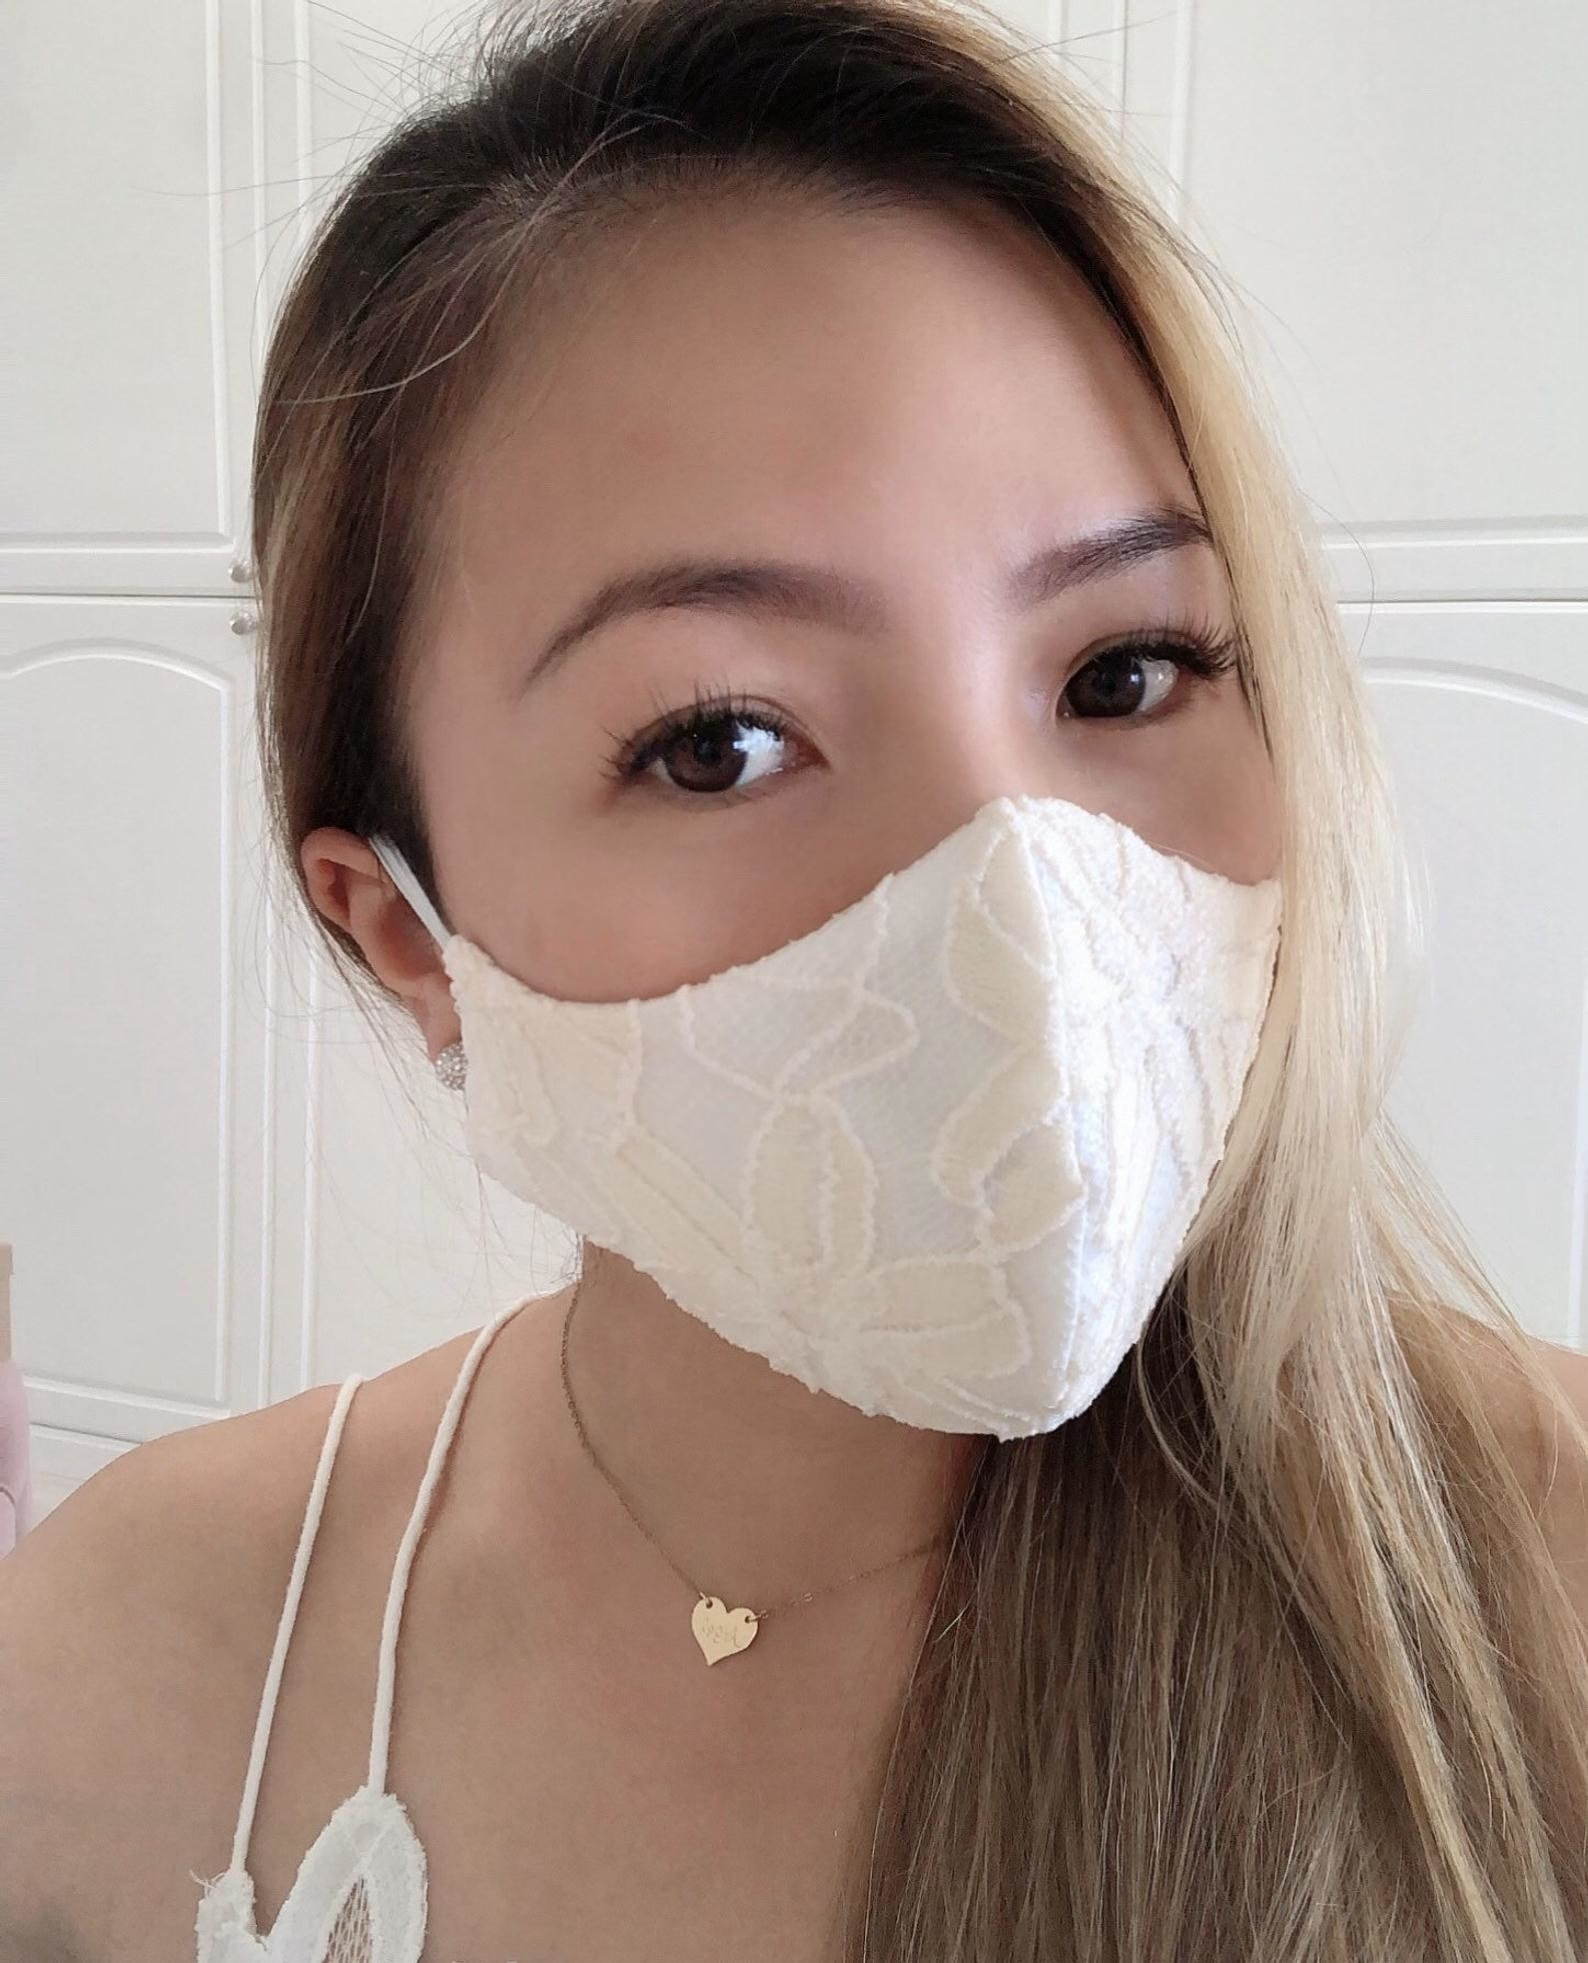 A model in a white lace face mask